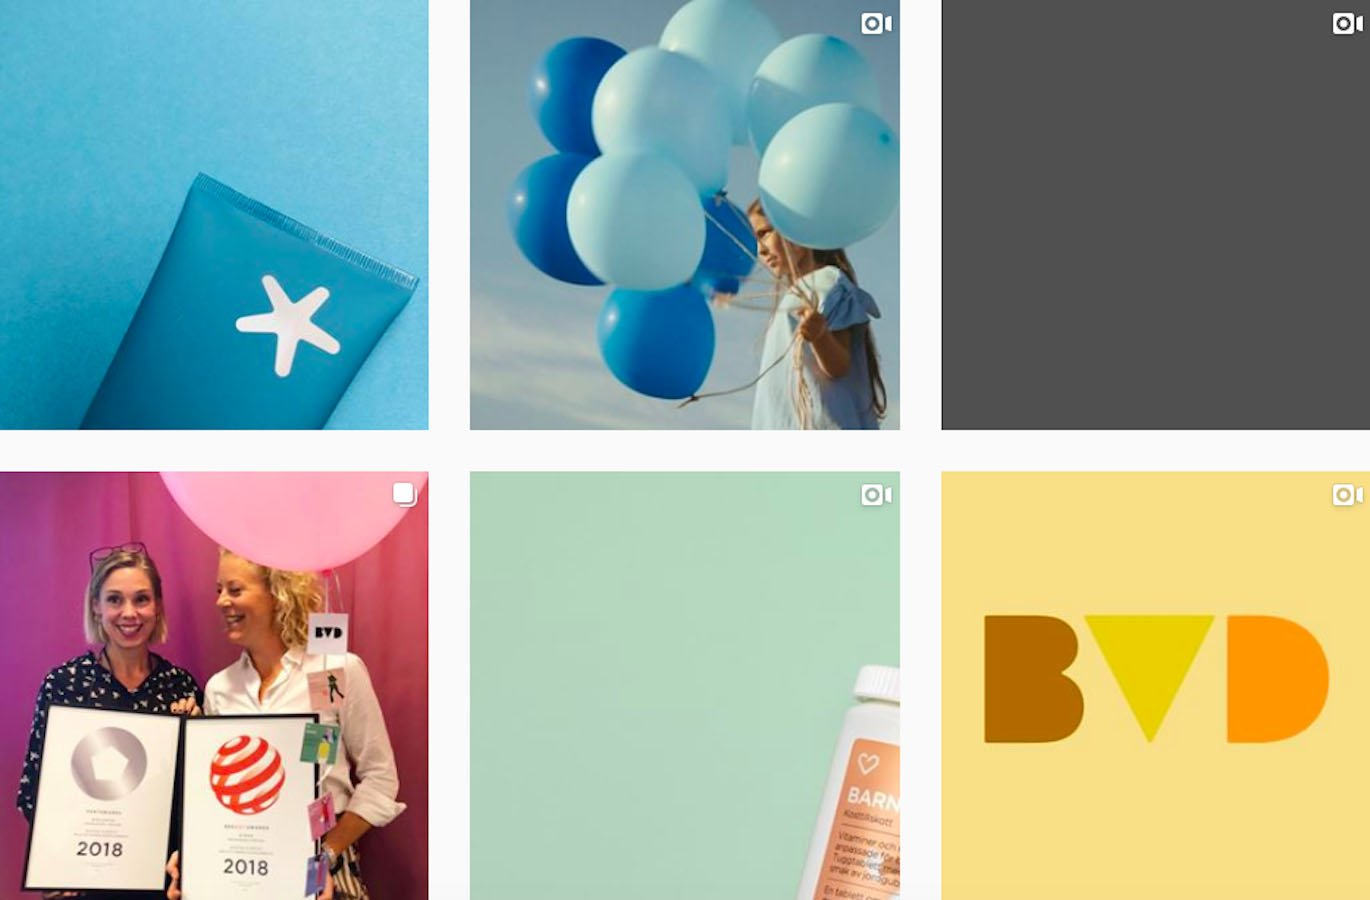 Web Design Inspiration: 110+ Accounts On Instagram and 10+ Best UX & Web Design Books in 2020 - bvd